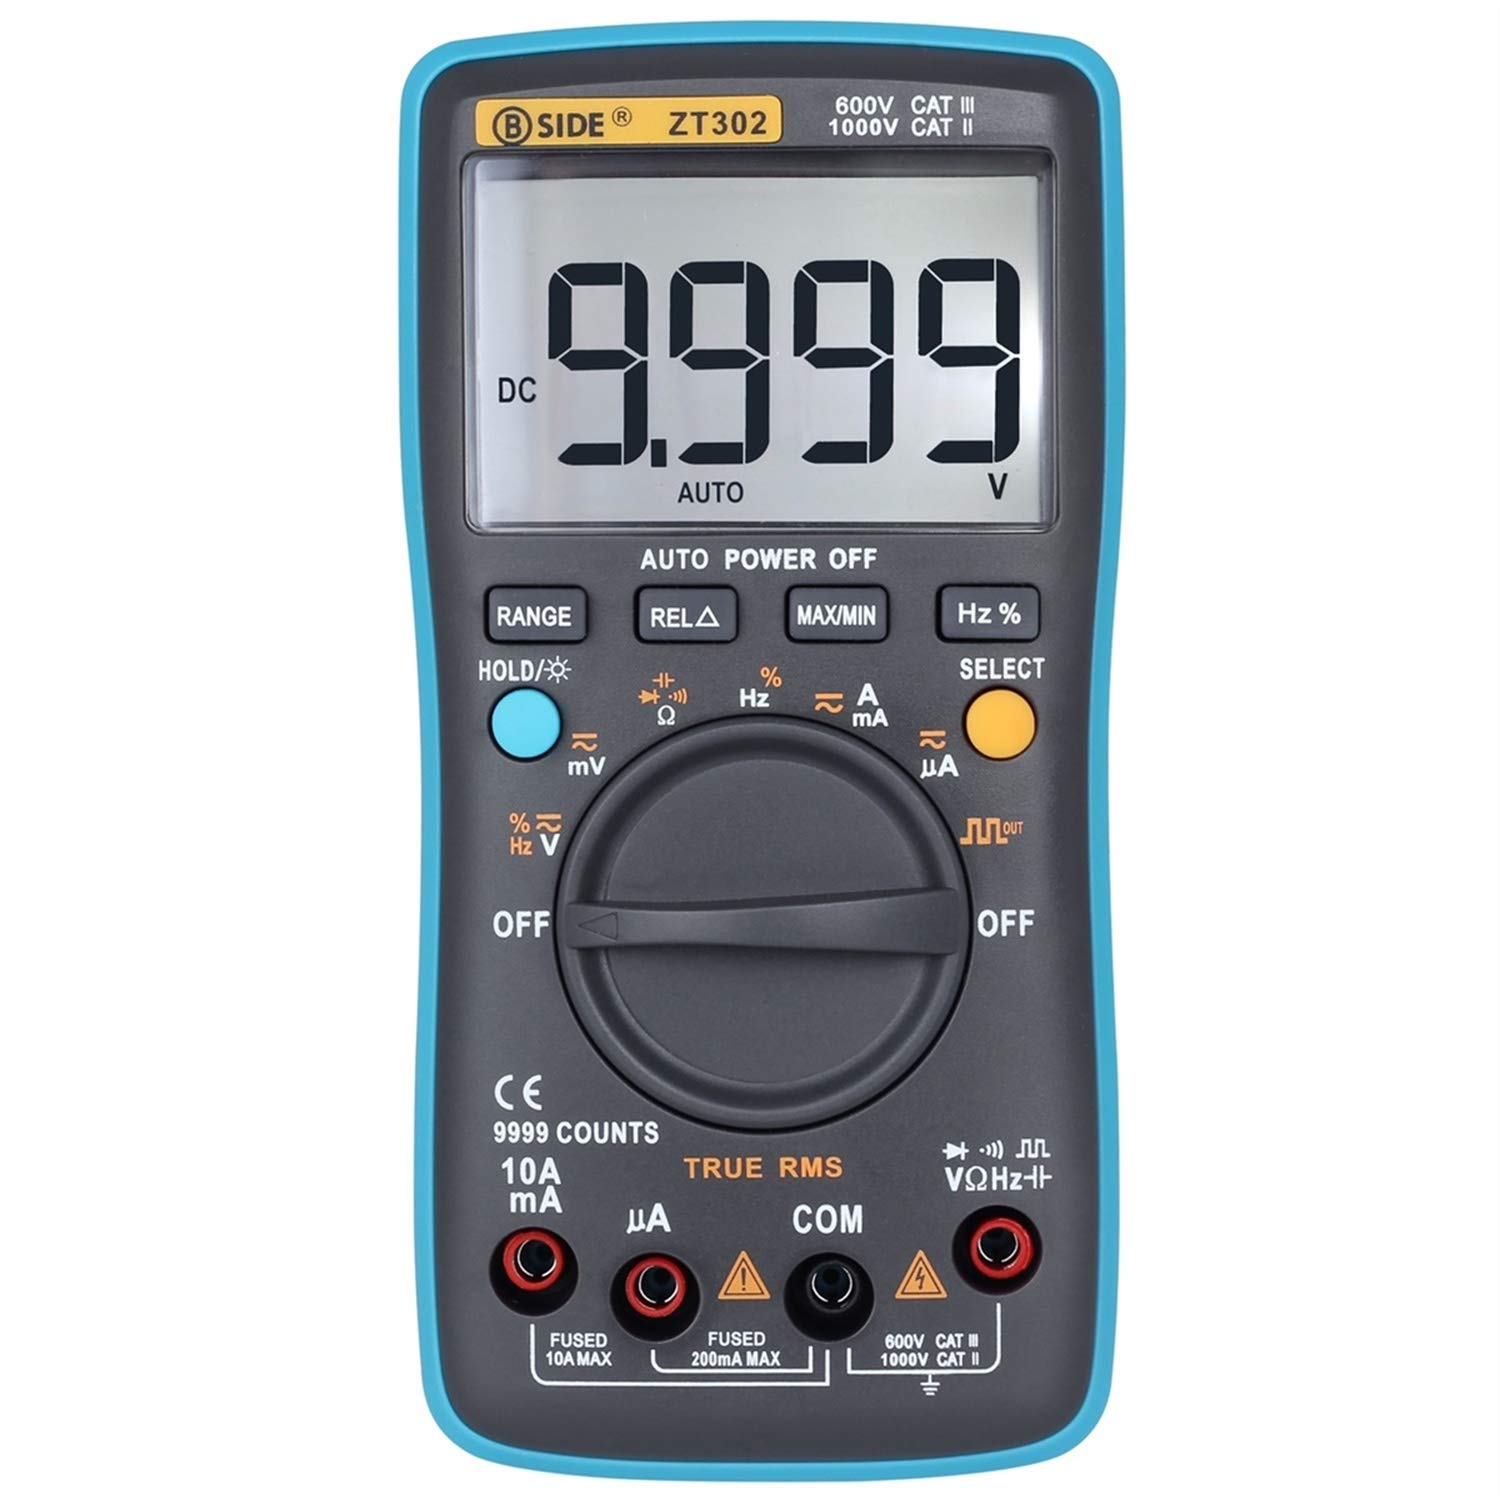 BSIDE ZT302 Digital Multimeter DMM Auto-Ranging True RMS 9999 Counts Voltmeter Capacitance Frequency Resistance Meter Testers